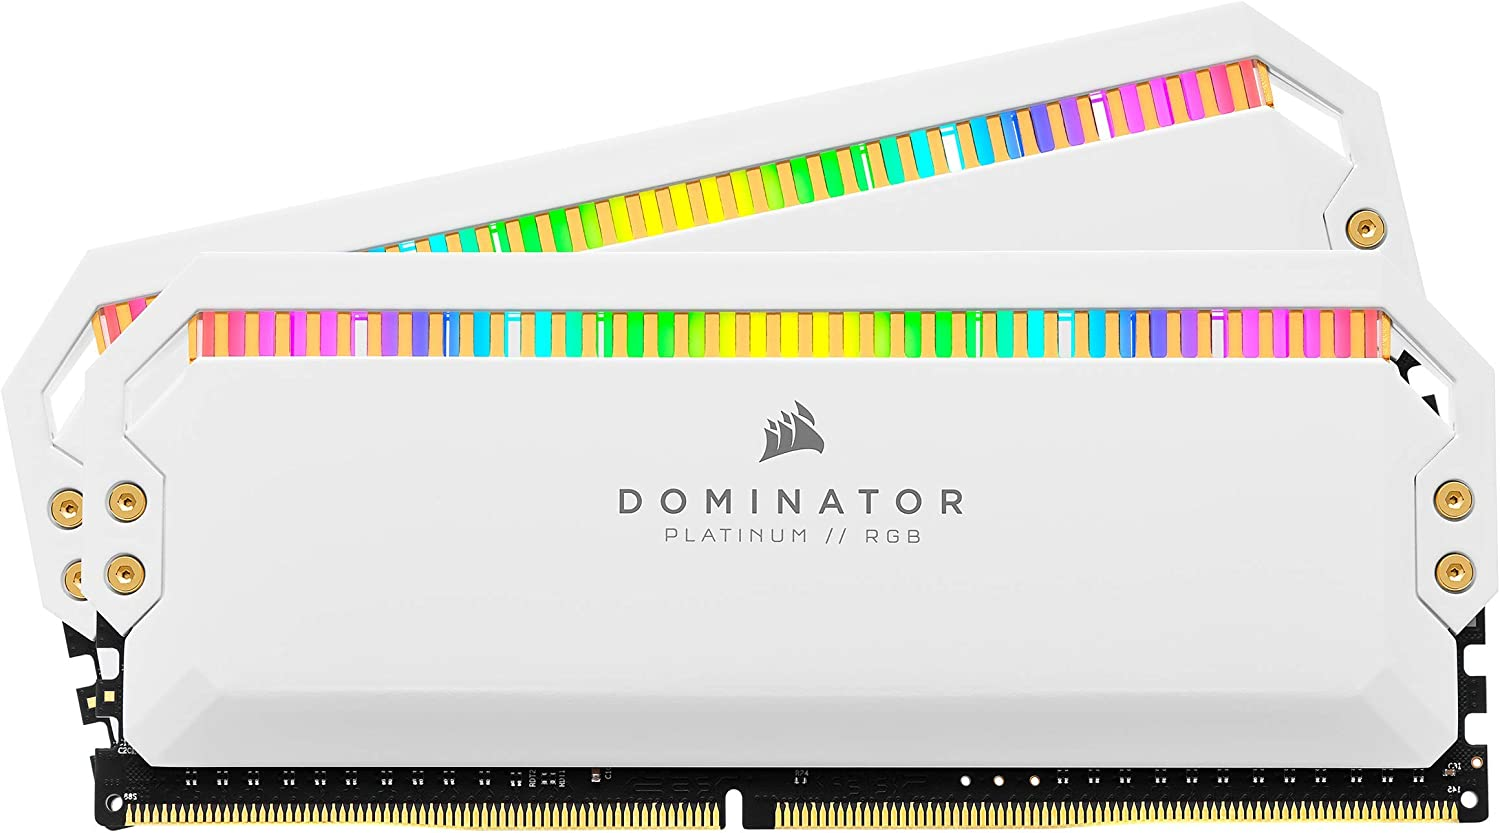 Corsair Dominator Platinum RGB 32GB (2x16GB) DDR4 4000 (PC4-32000) C19 1.35V Desktop Memory - White, CMT32GX4M2K4000C19W